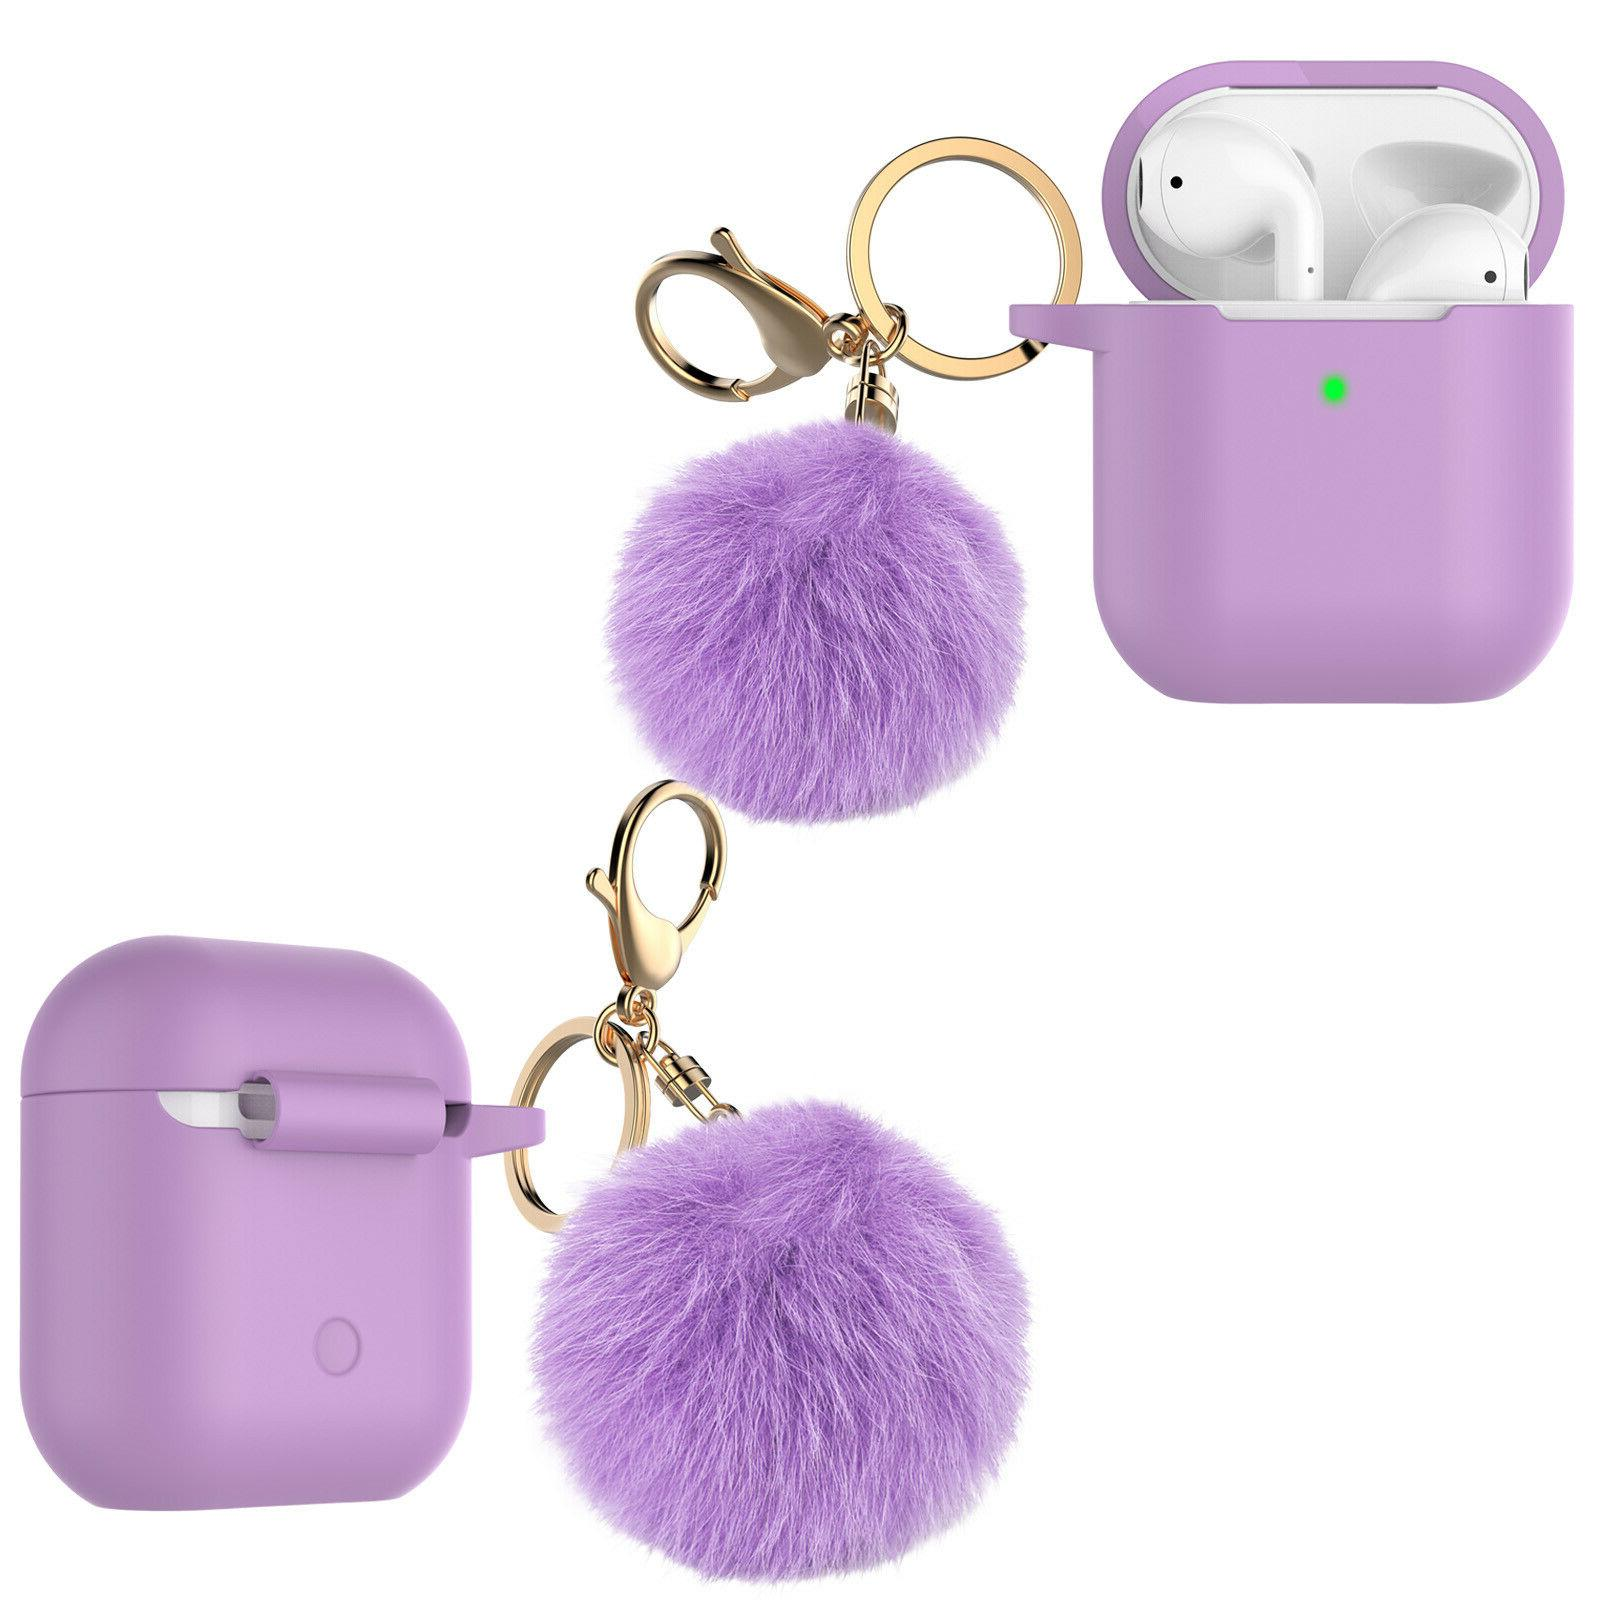 Airpods Silicone Cover Skin Case With Fur Ball